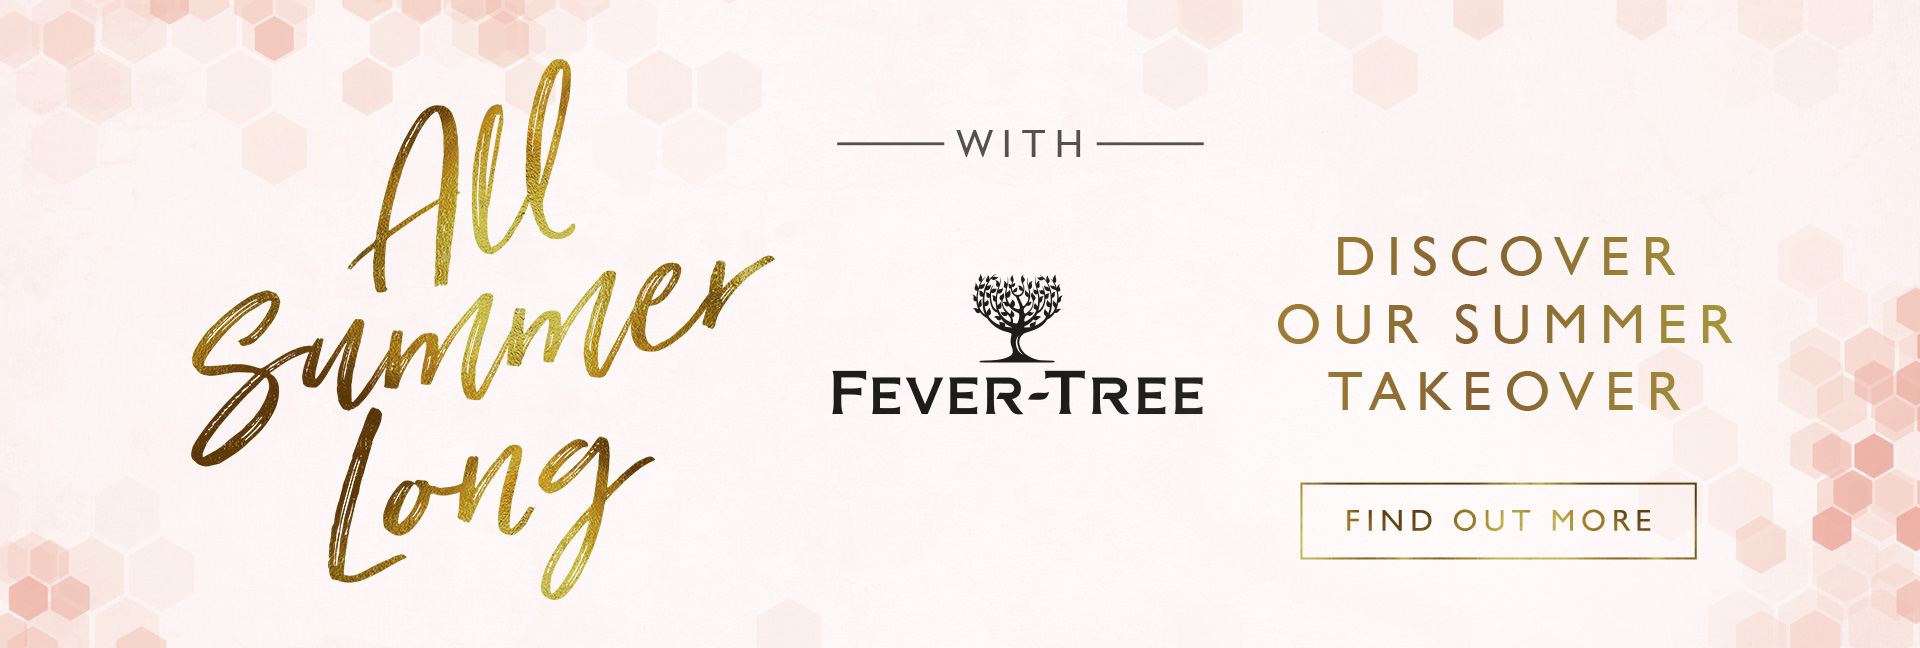 abo-summerparties-banner-fevertree.jpg